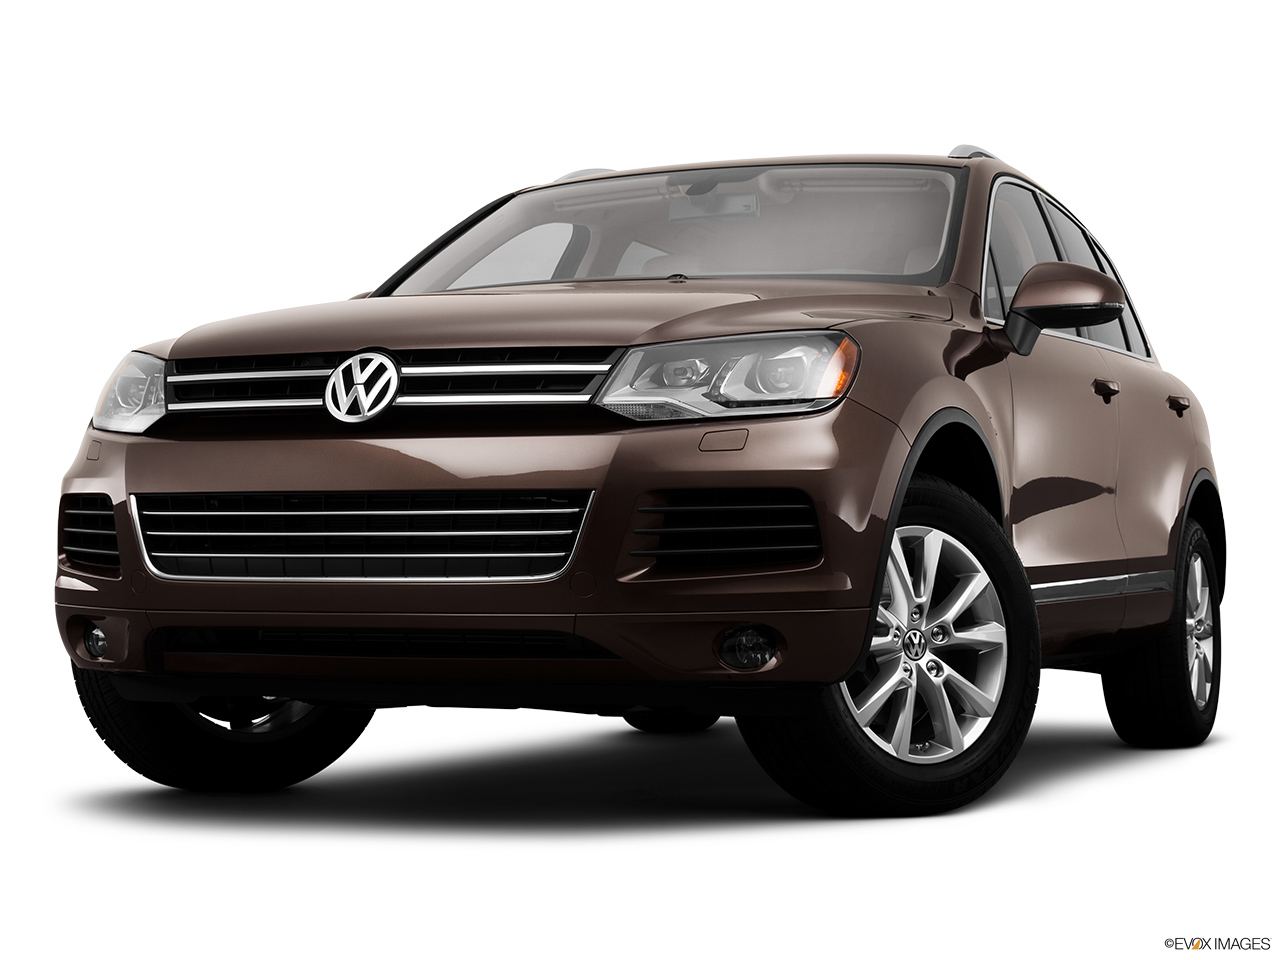 2014 Volkswagen Touareg 2 V6 Sport Front angle view, low wide perspective.